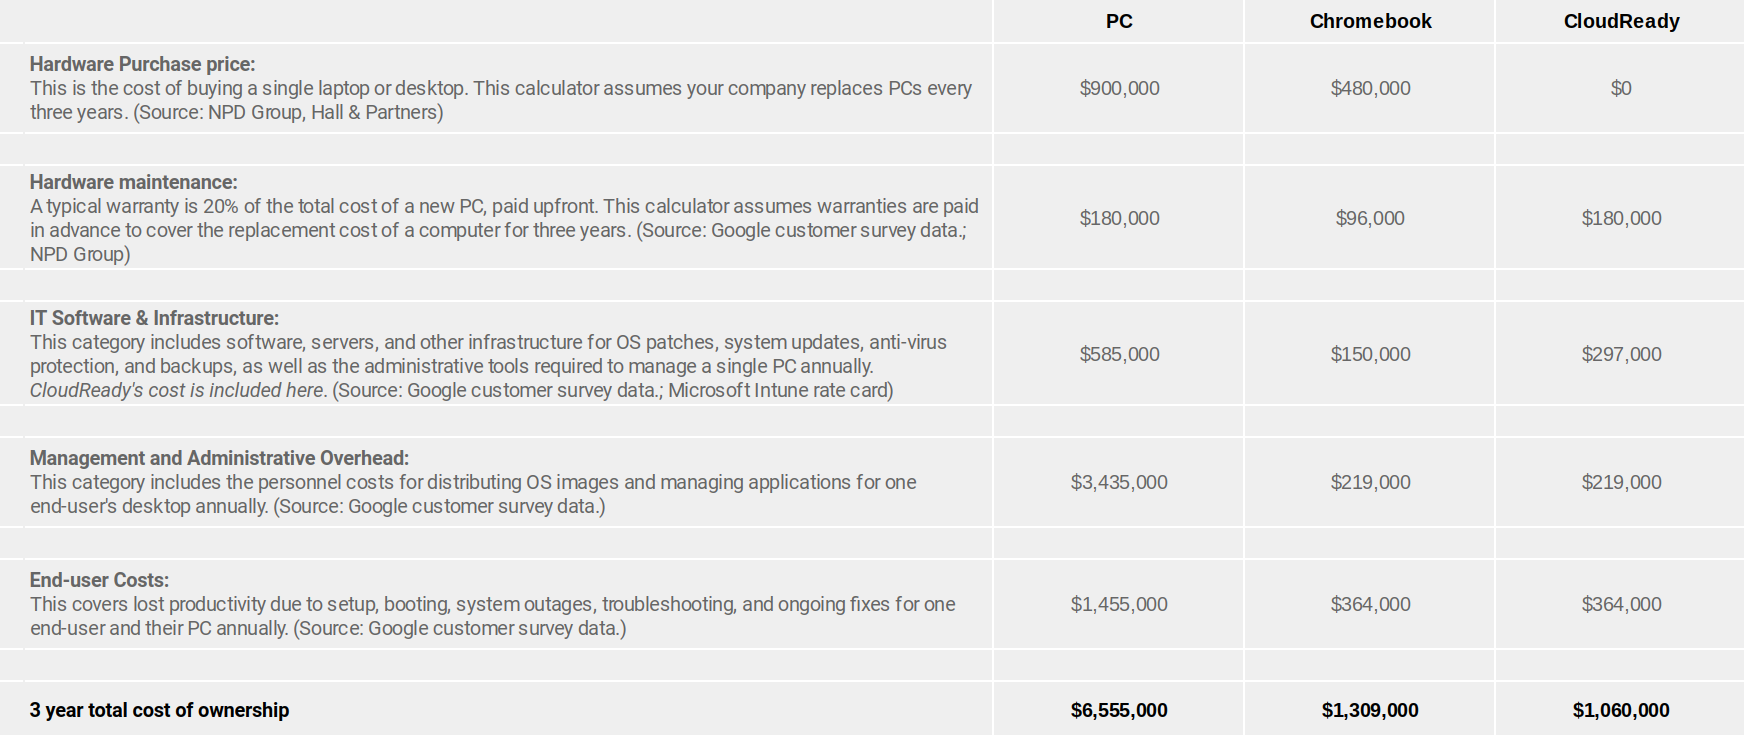 Here you can compare all three options considered here. CloudReady offers the most savings and the least friction around new devices, but it is more profound to note that both options which are built with cloud computing in mind reflect the meaningfully lowered cost.